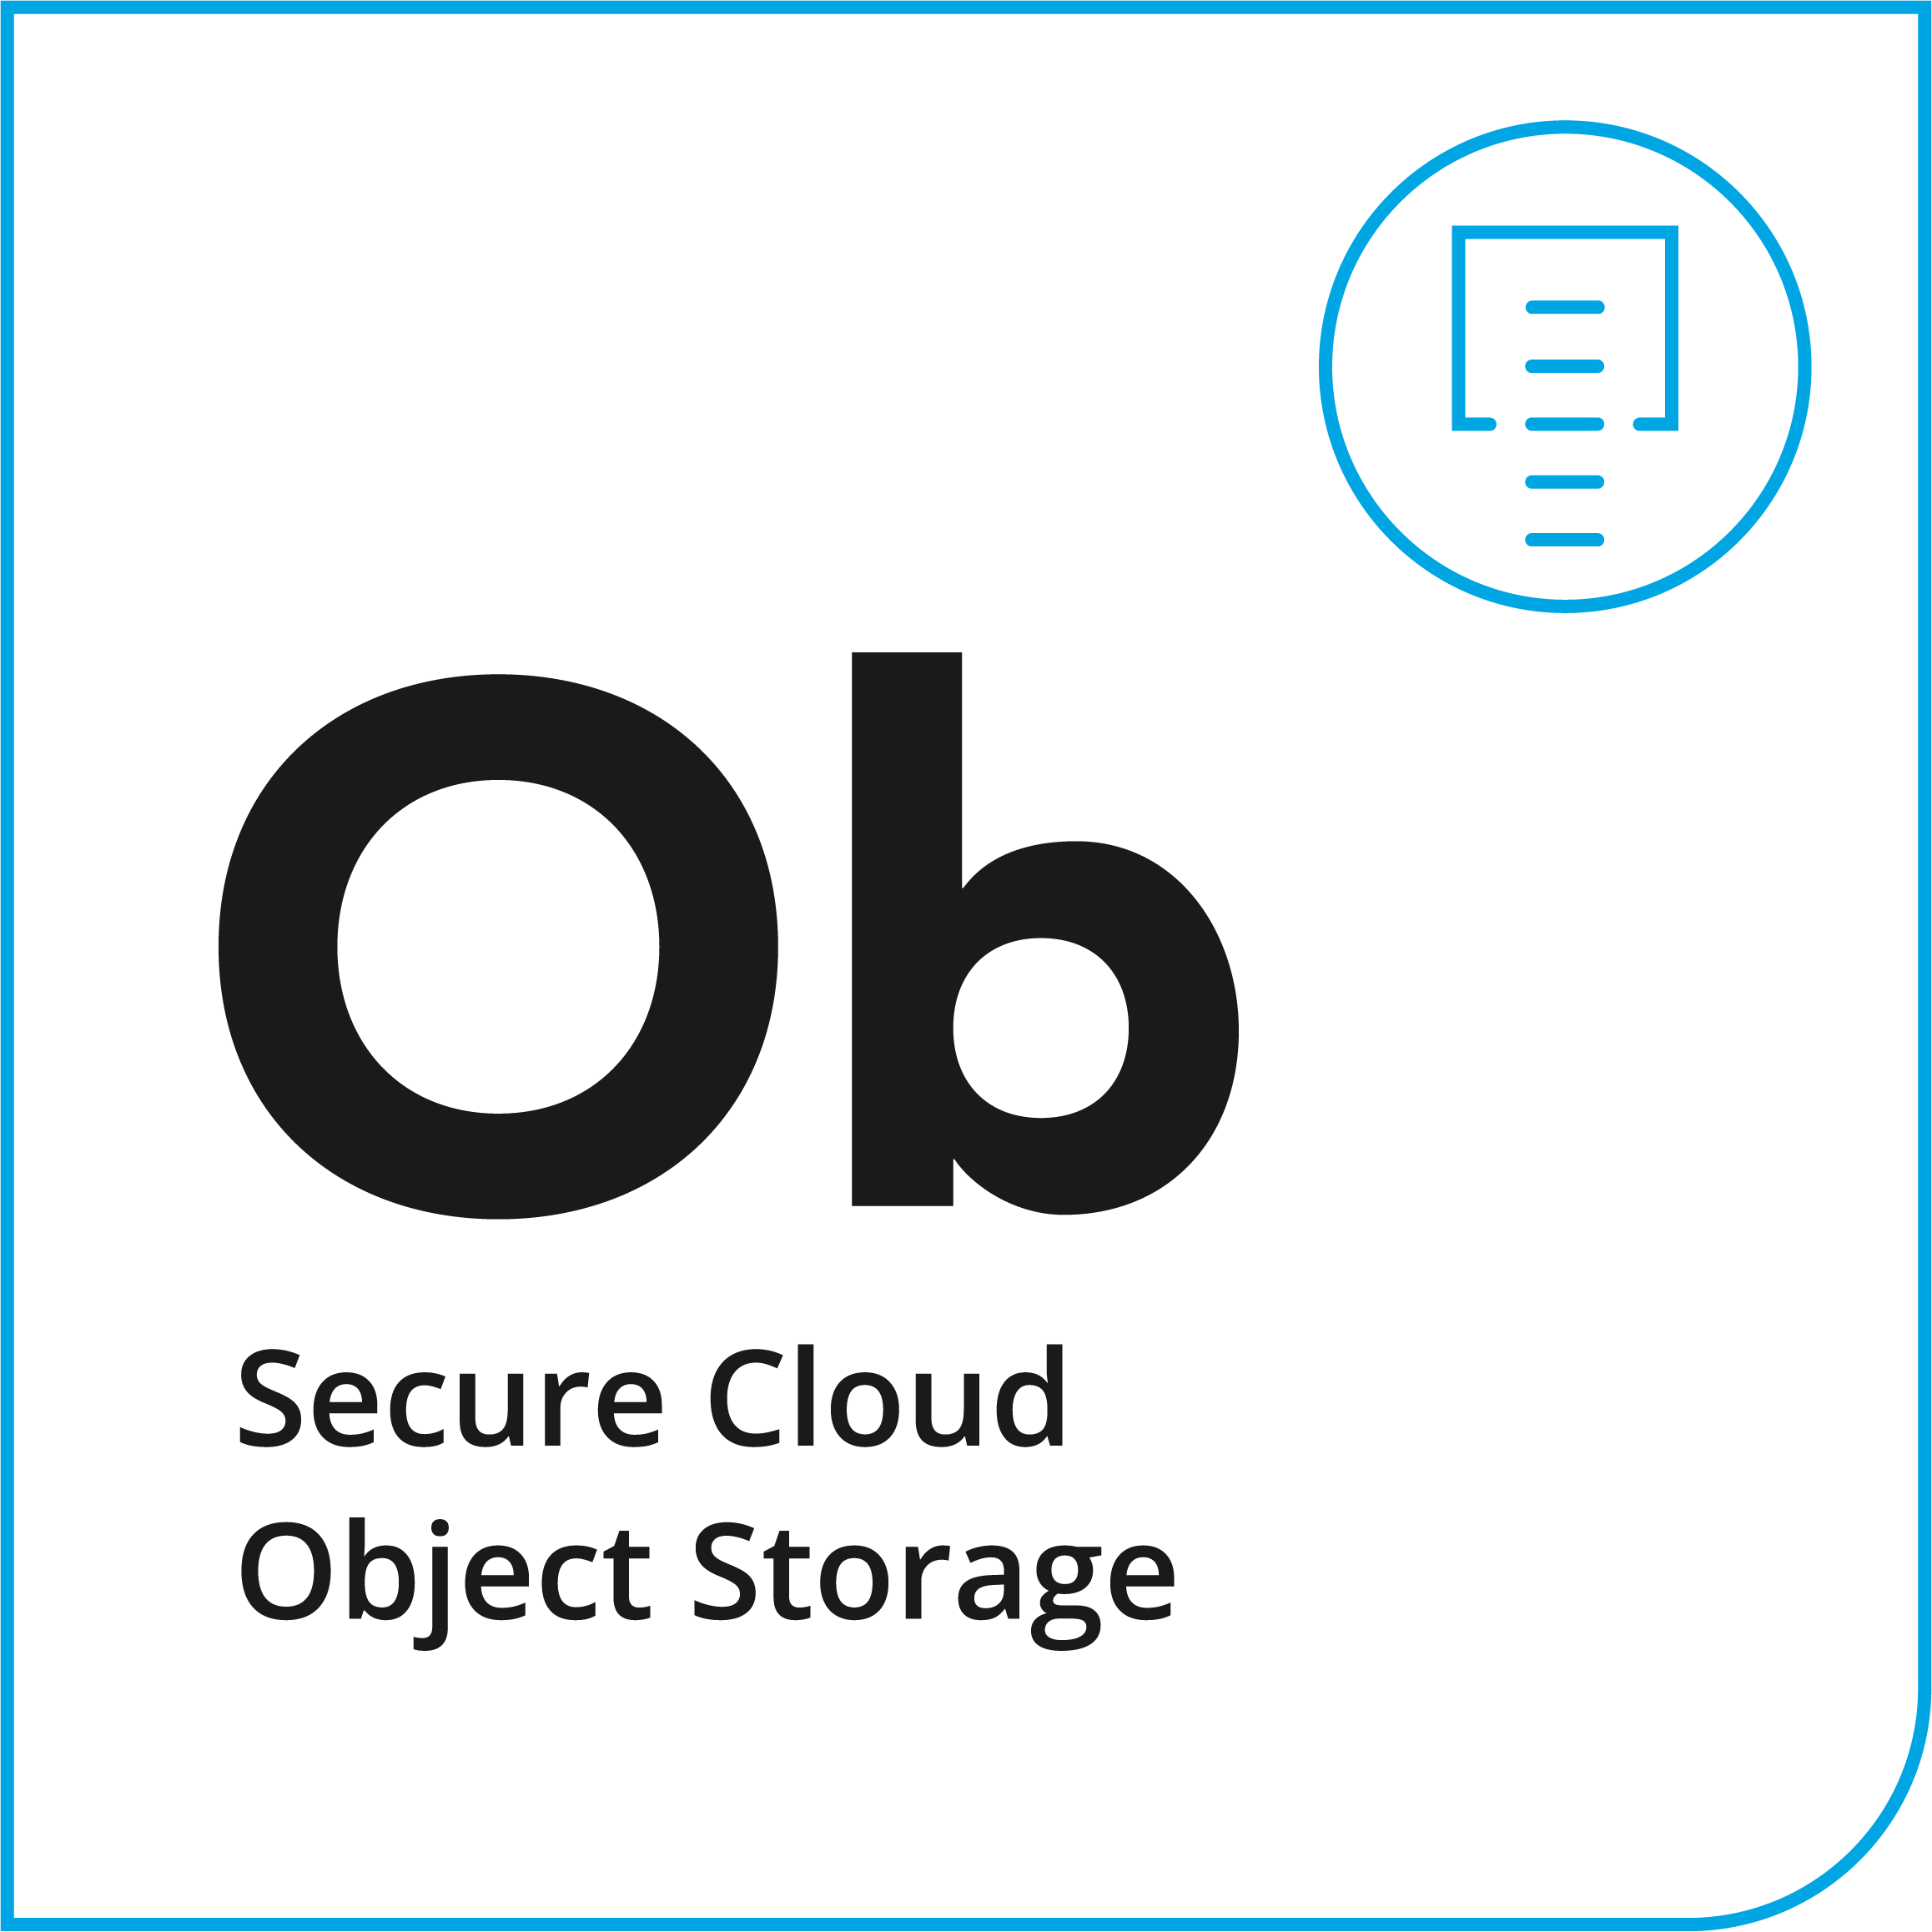 iland Object Storage